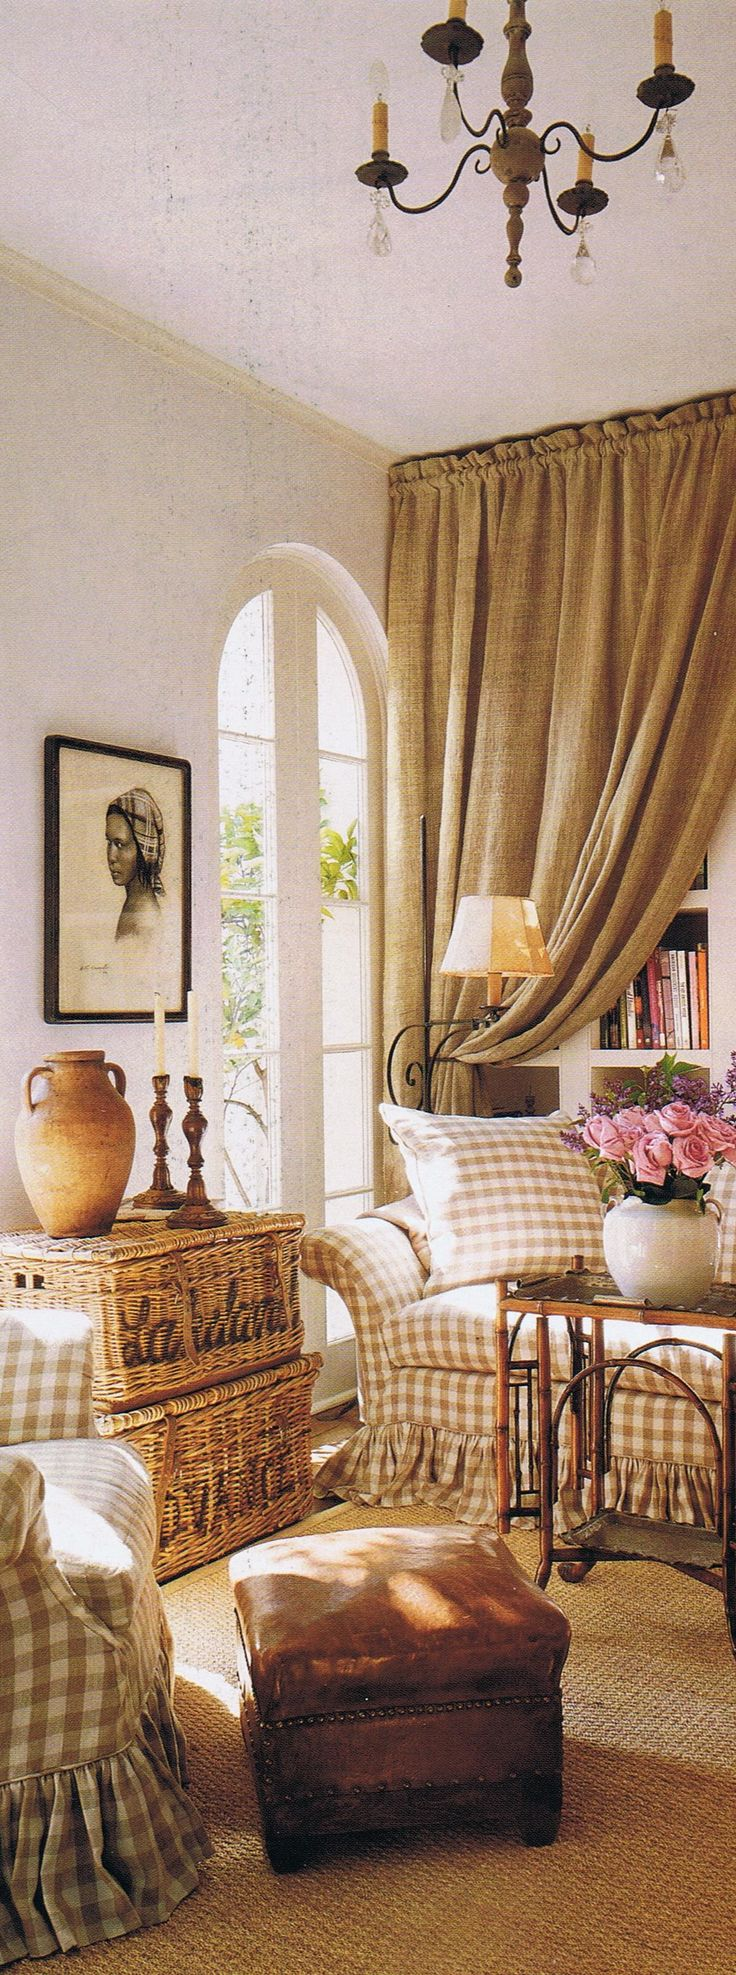 French Country Decor -  Taupe and white checkered furniture, complimented by wicker baskets, burlap curtains & ottoman. Classic French Country Style by Pam Pierce.